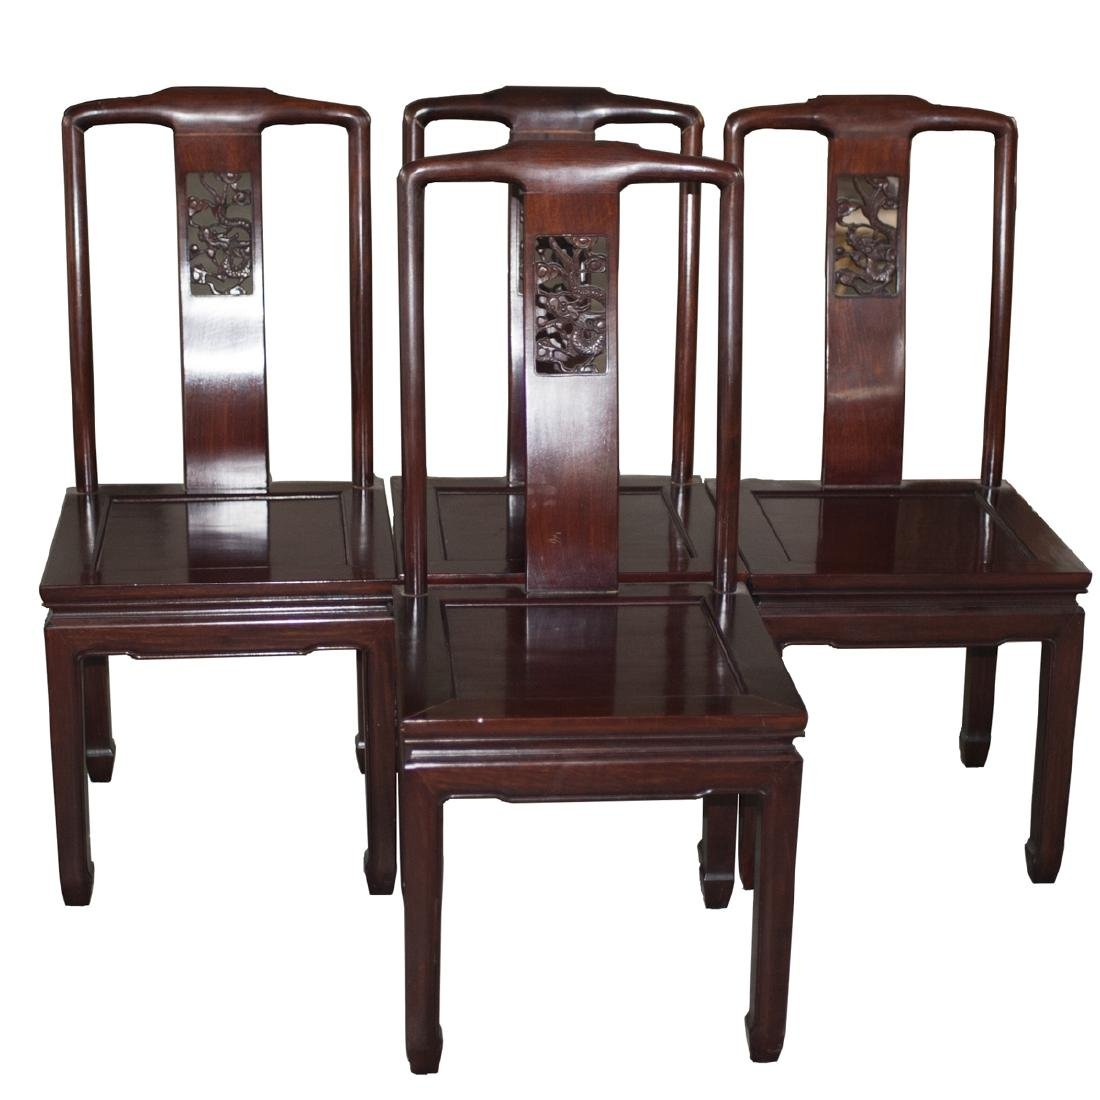 Carved Chinese Wooden Dining Chairs